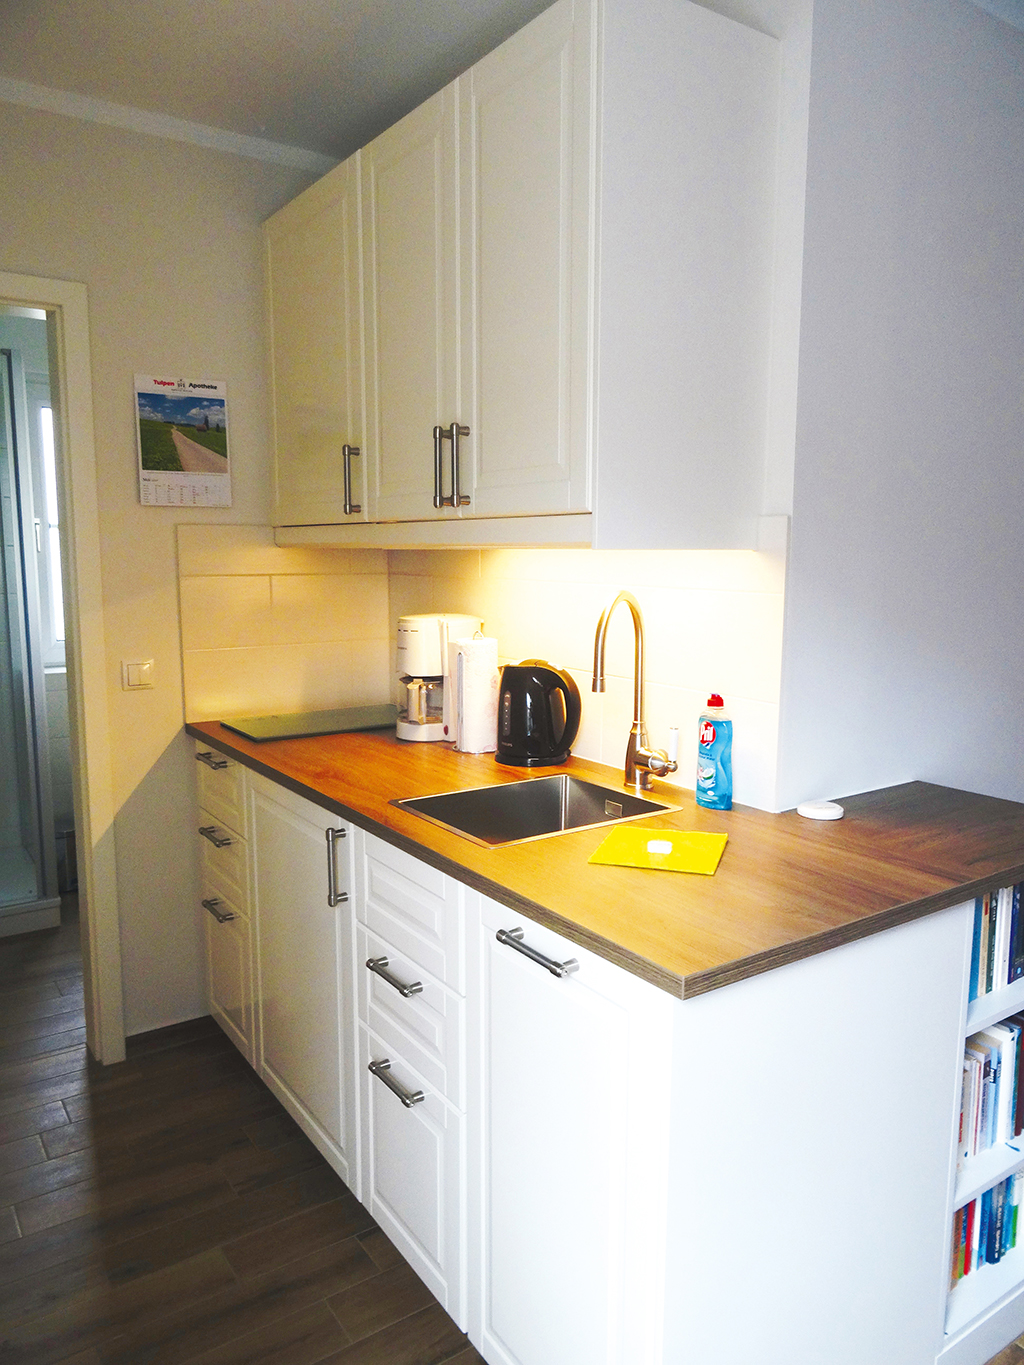 Holiday apartment 2-3 Pers. (1625087), Zingst, Fischland-Darss-Zingst, Mecklenburg-Western Pomerania, Germany, picture 4